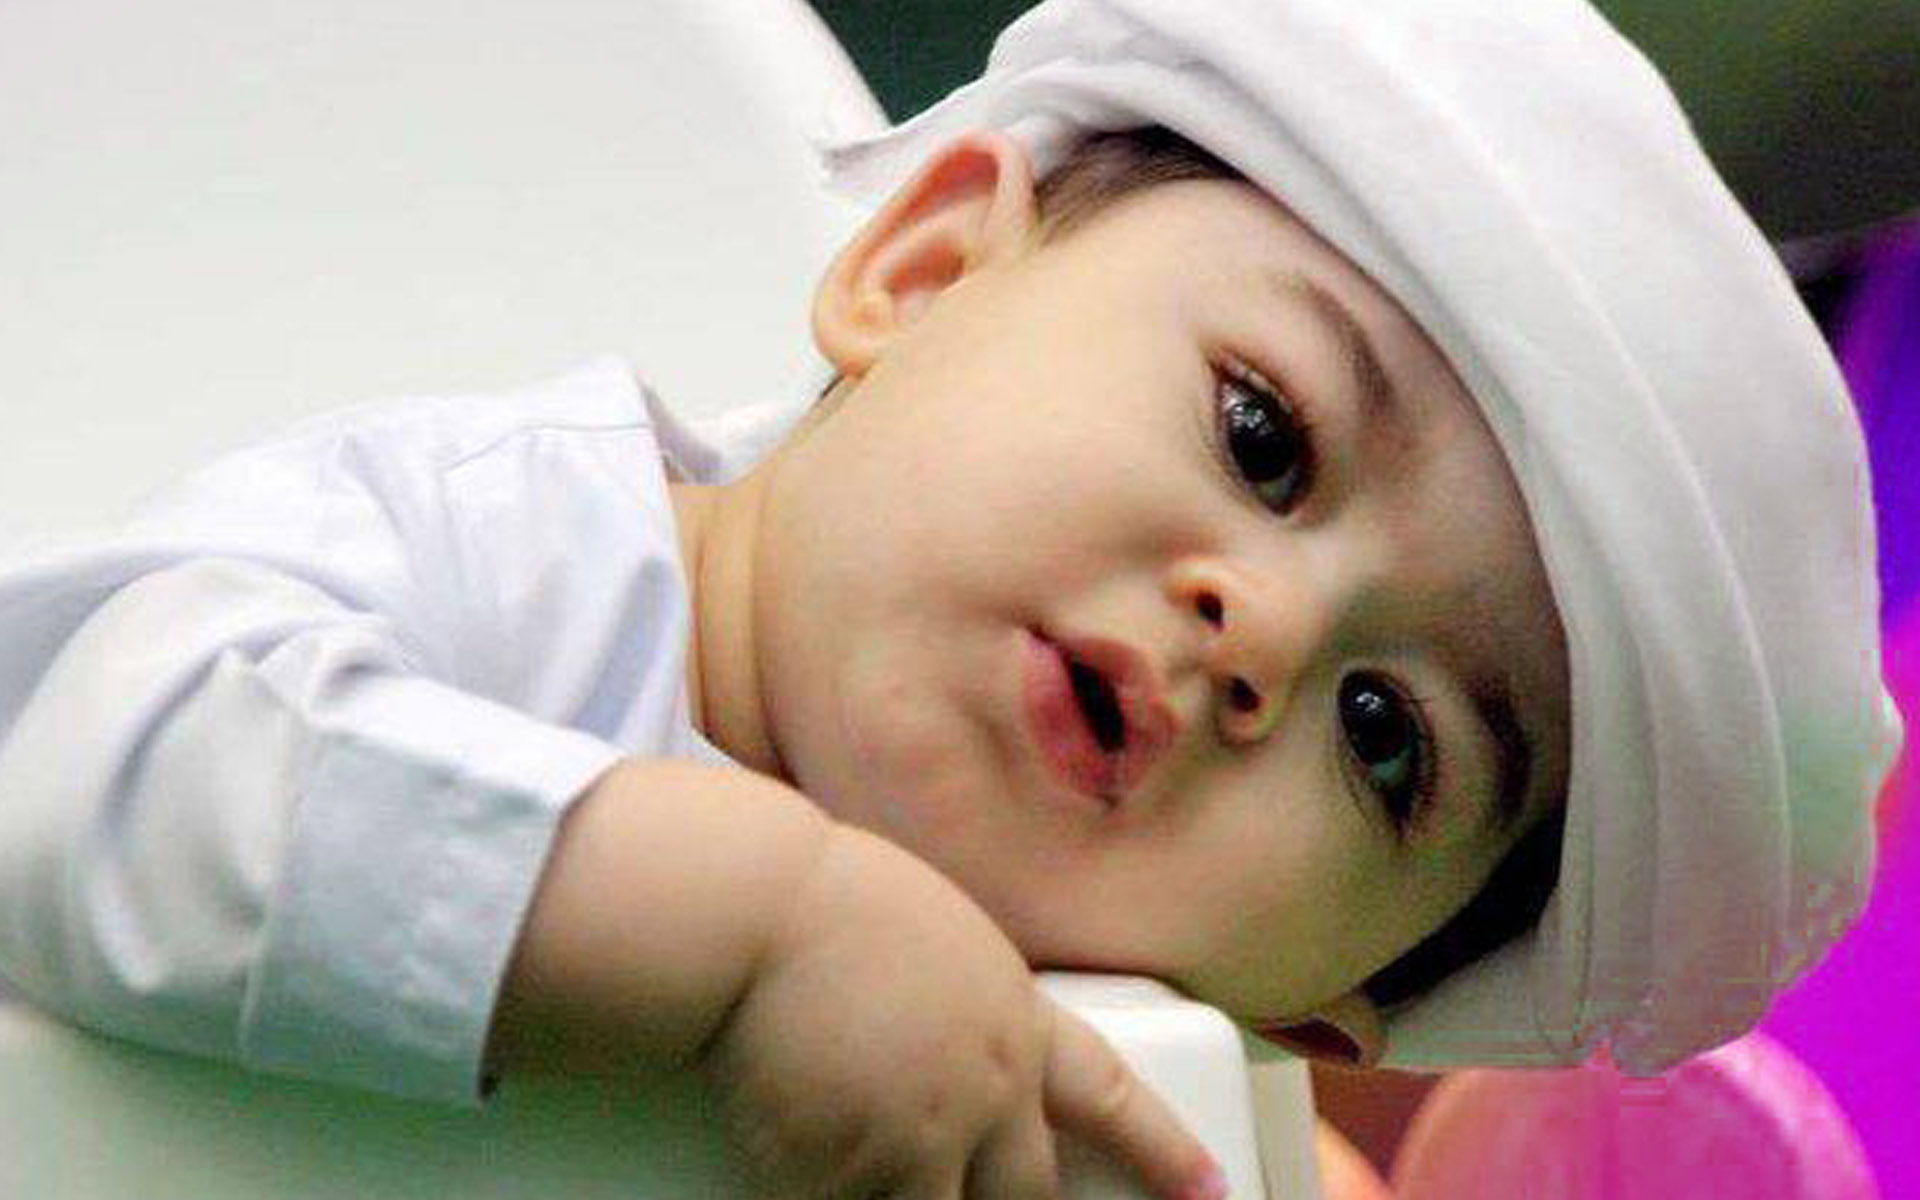 Cute Baby Girl Wallpapers For Mobile The Art Mad Wallpapers 1920x1200